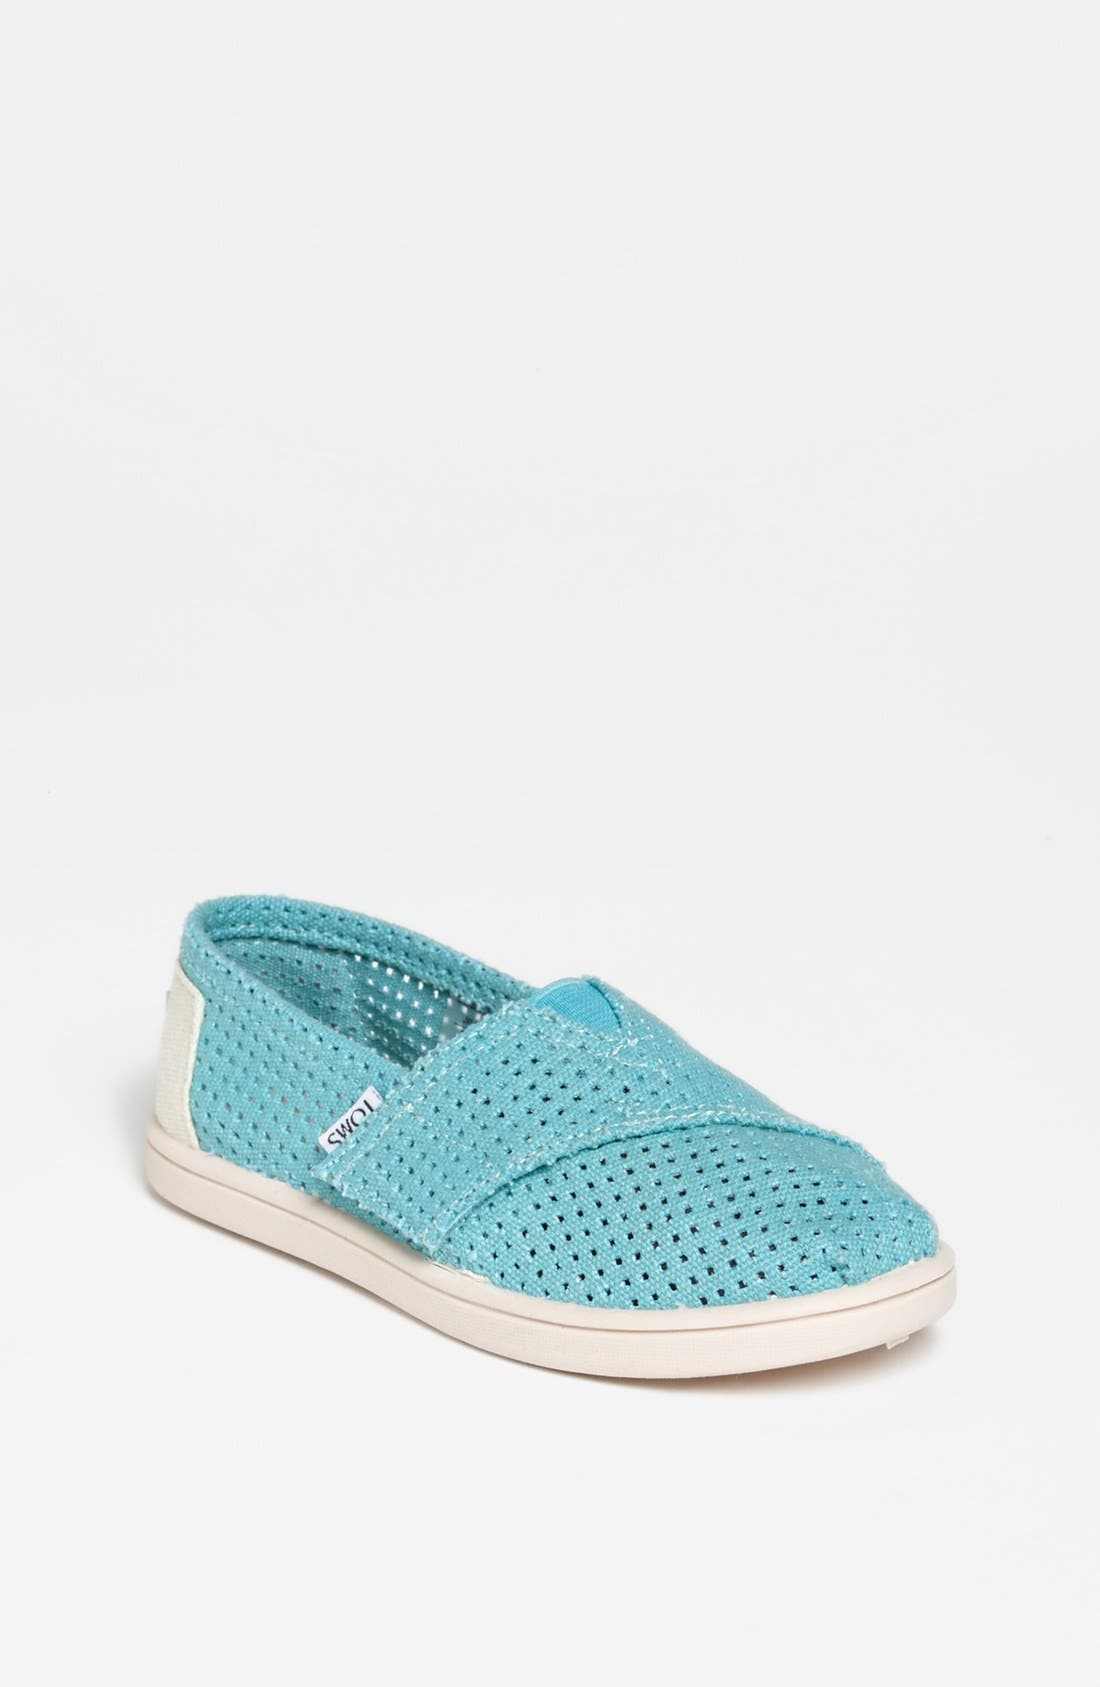 Alternate Image 1 Selected - TOMS 'Classic - Tiny' Perforated Slip-On (Baby, Walker & Toddler)